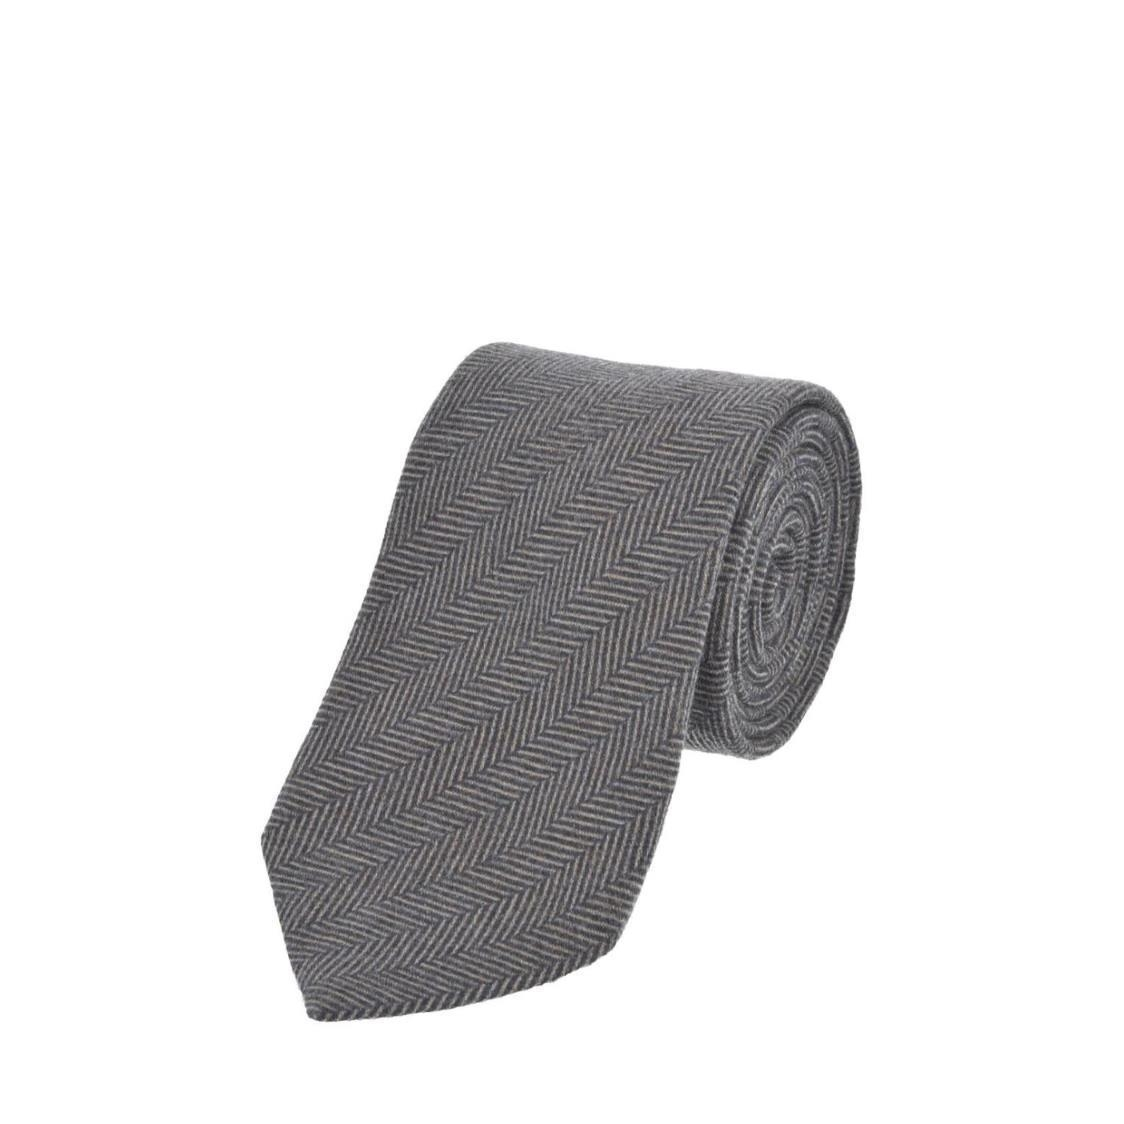 Italian Silk Ties in Grey Herringbone